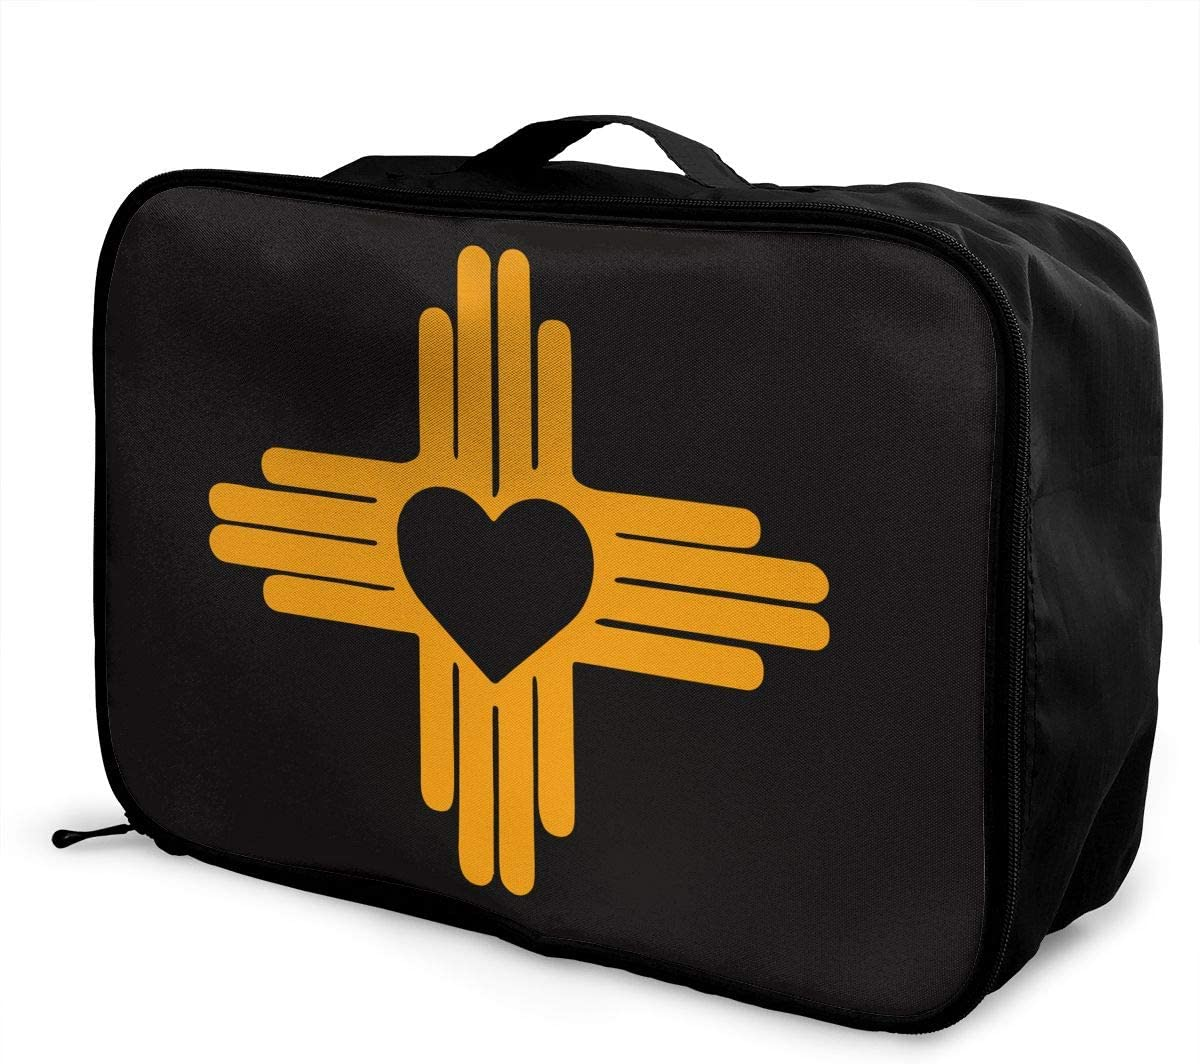 Zia With Heart Symbol - New L Max 87% OFF State Flag Deluxe Lightweight Tote Mexico